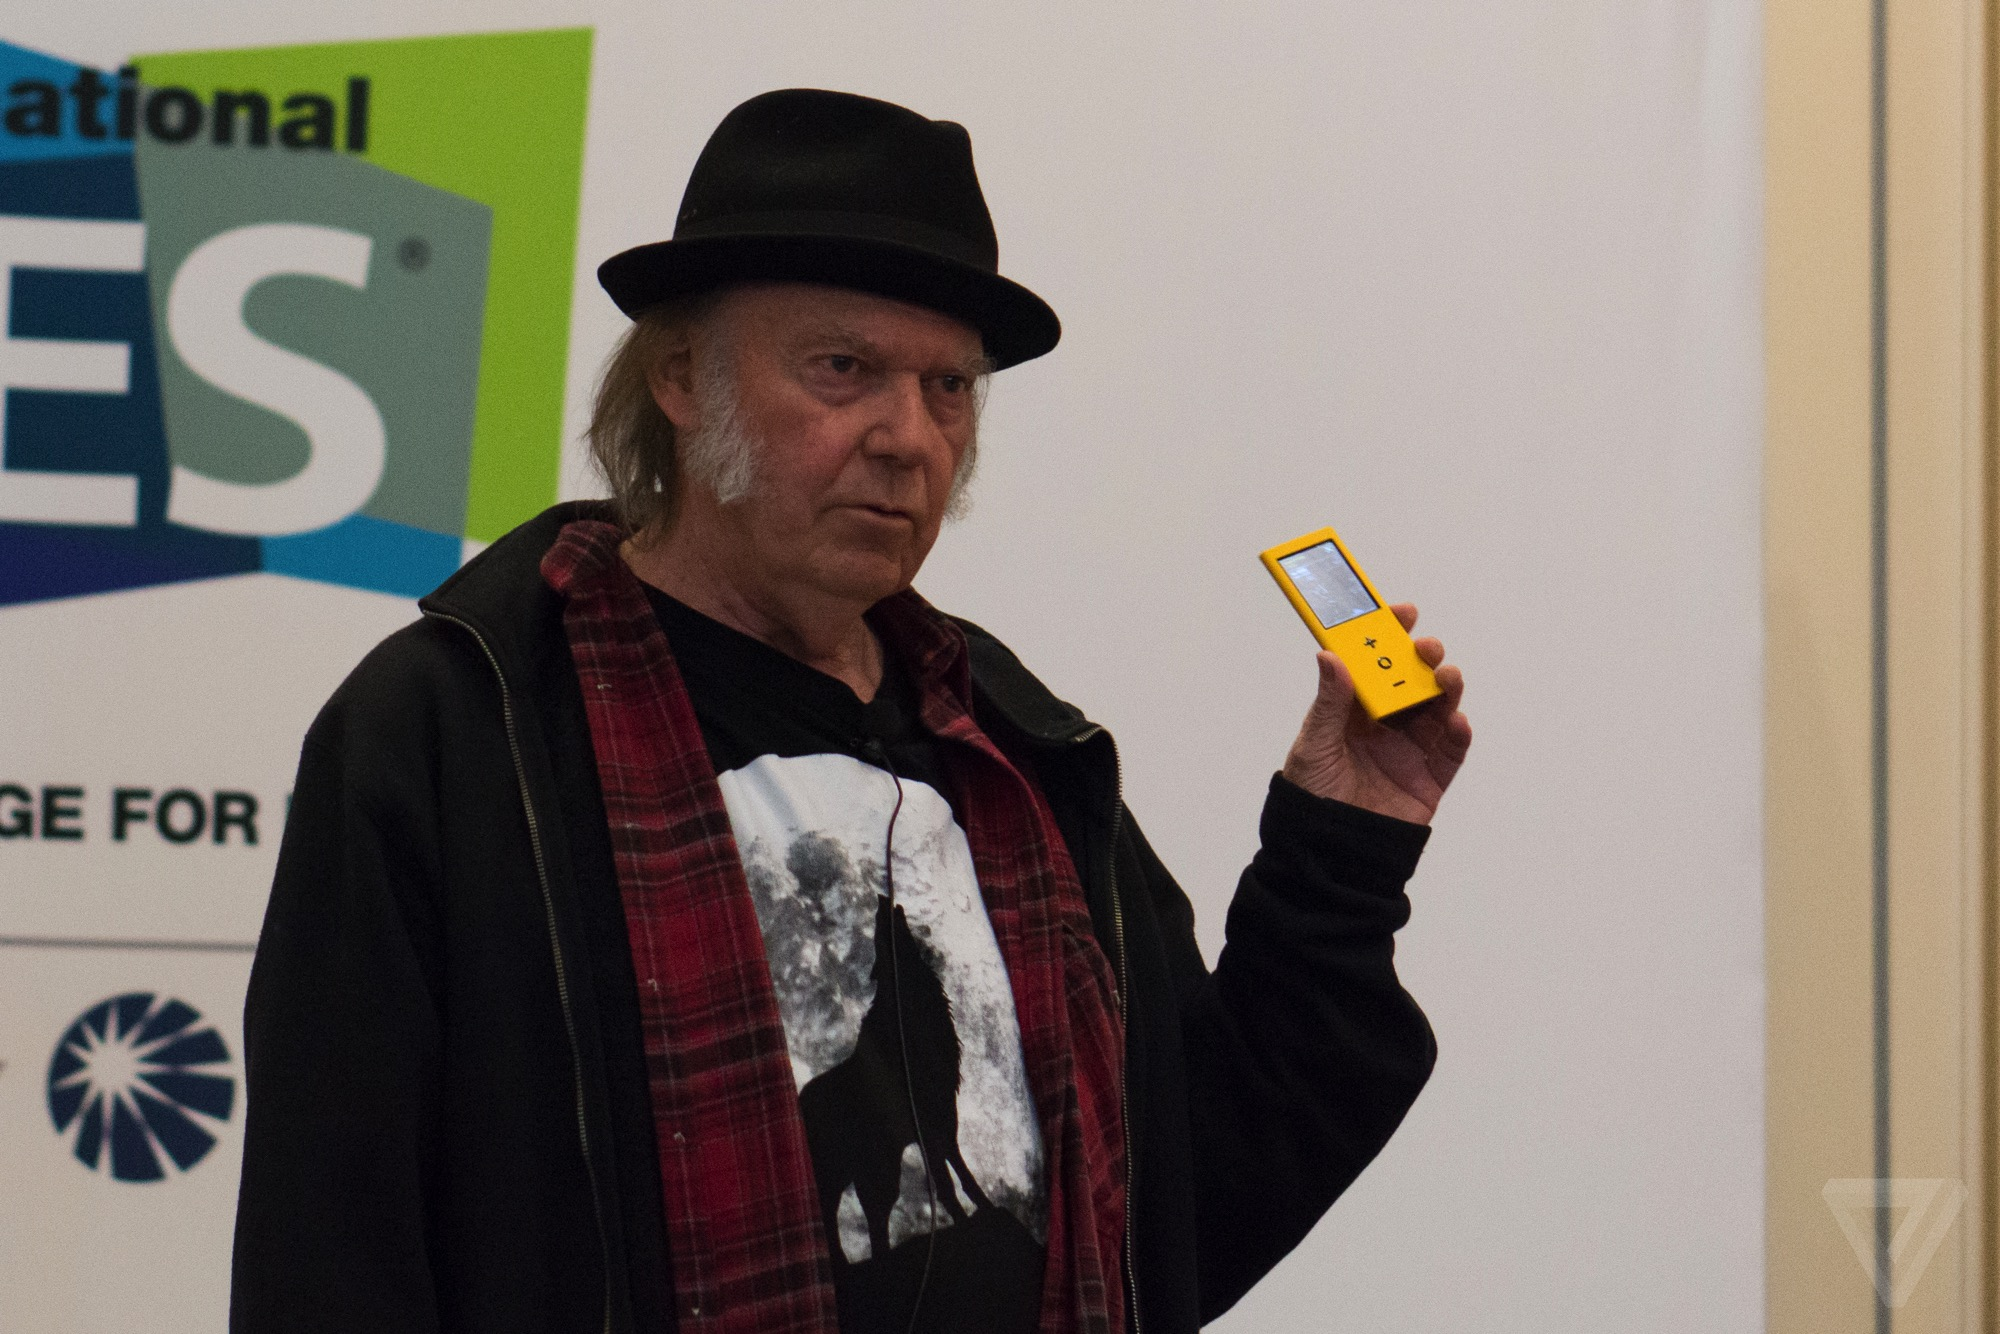 Neil Young's high-quality Pono music player goes on sale Monday for $399